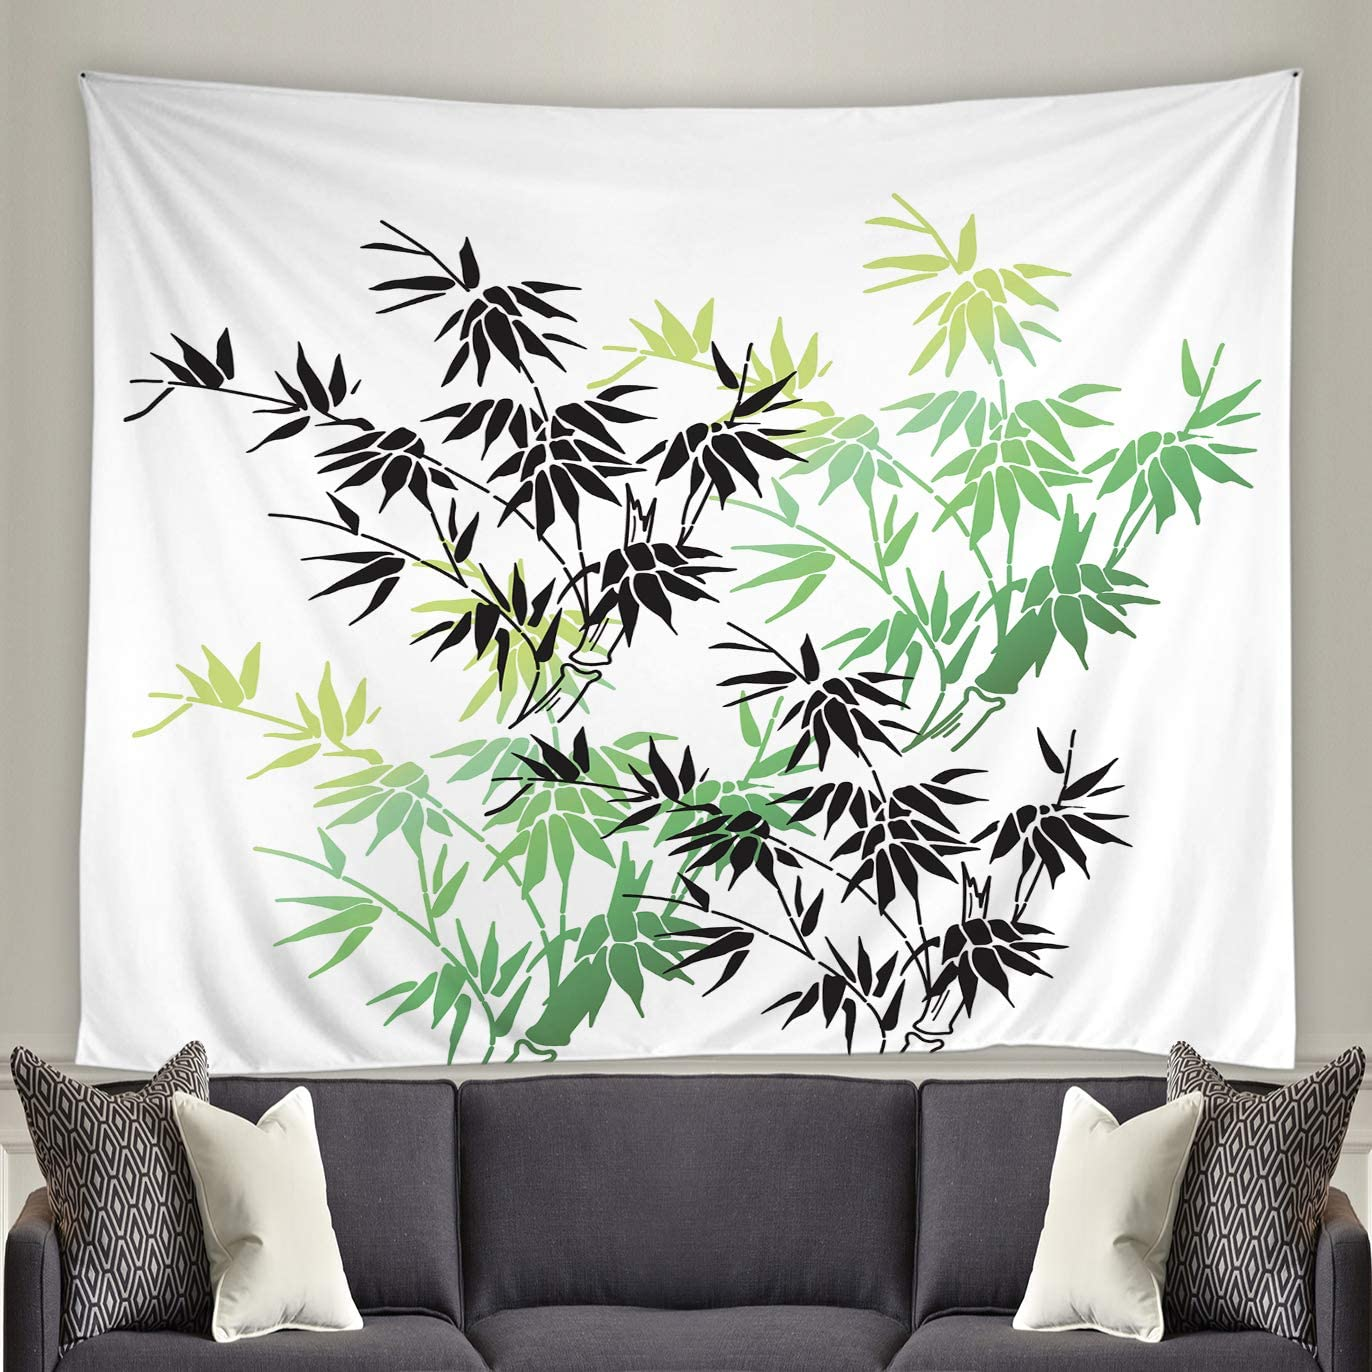 Lileihao Bamboo Plant Tapestry Spring Plants Scenery Home Living Room Bedroom Background Cloth Dorm Room Bedside Decor Arrange Curtains Polyester 90 x 70 Inch